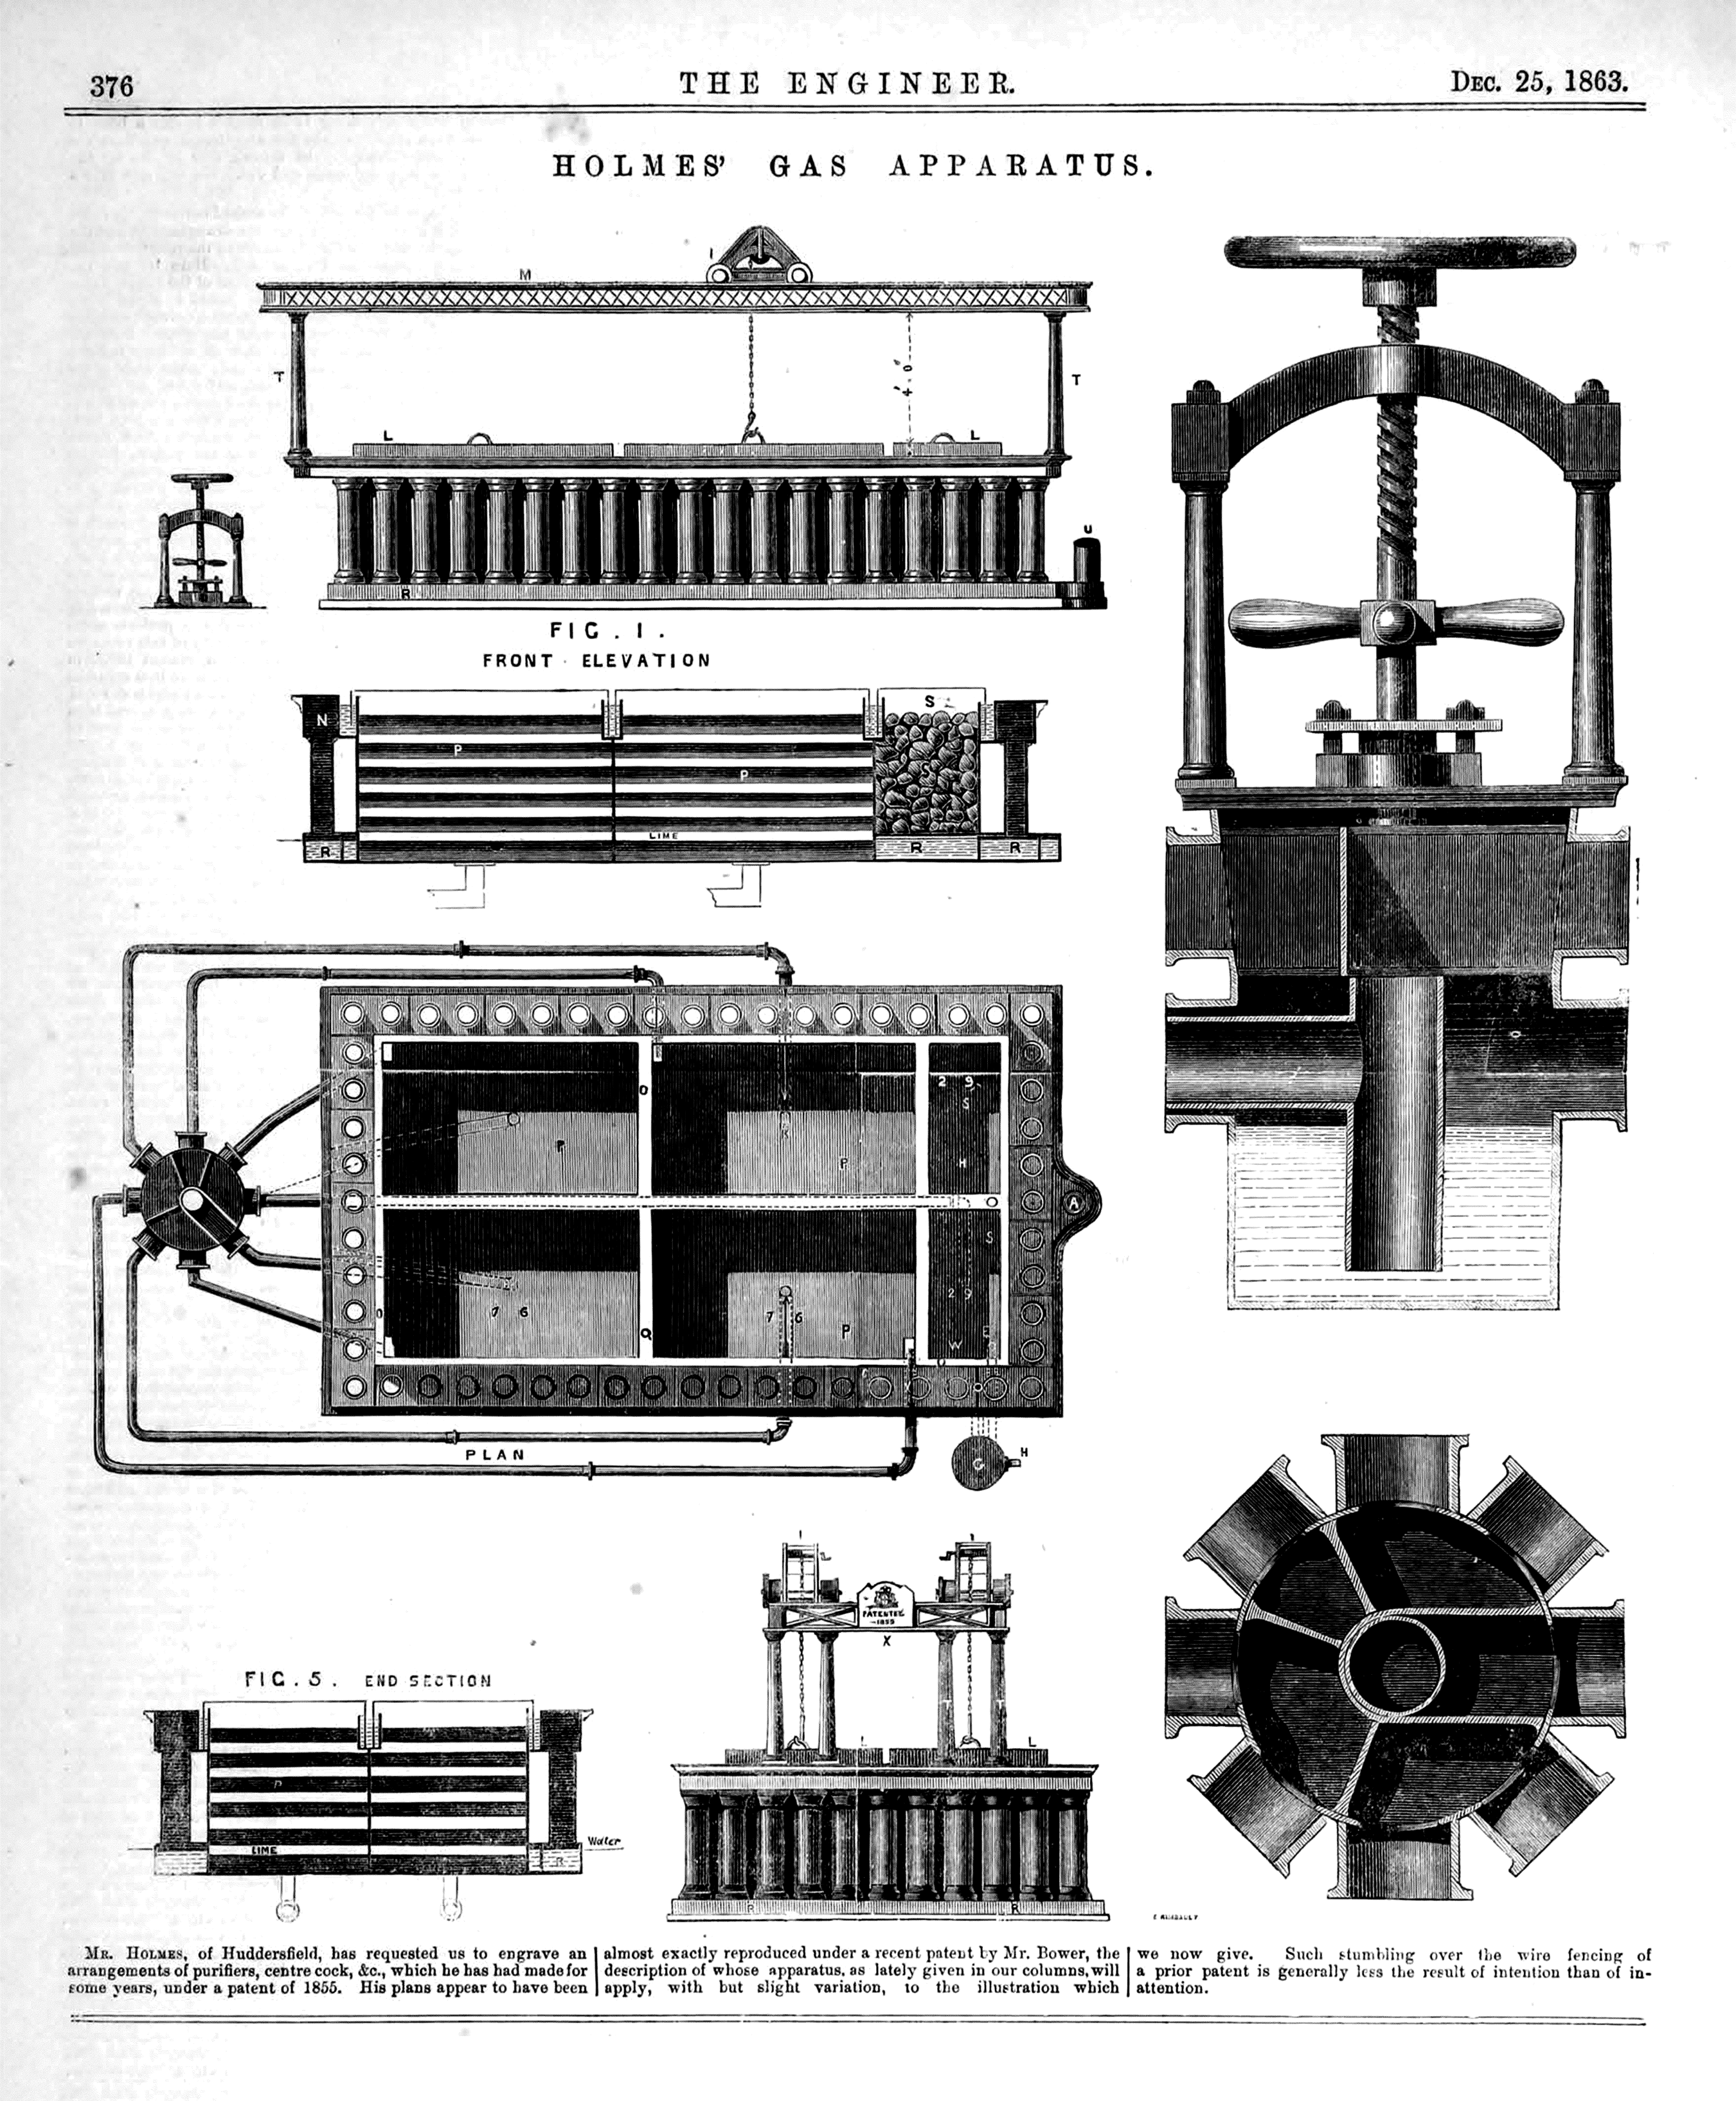 1863.12.25 Holmes' Gas Apparatus - The Engineer.png